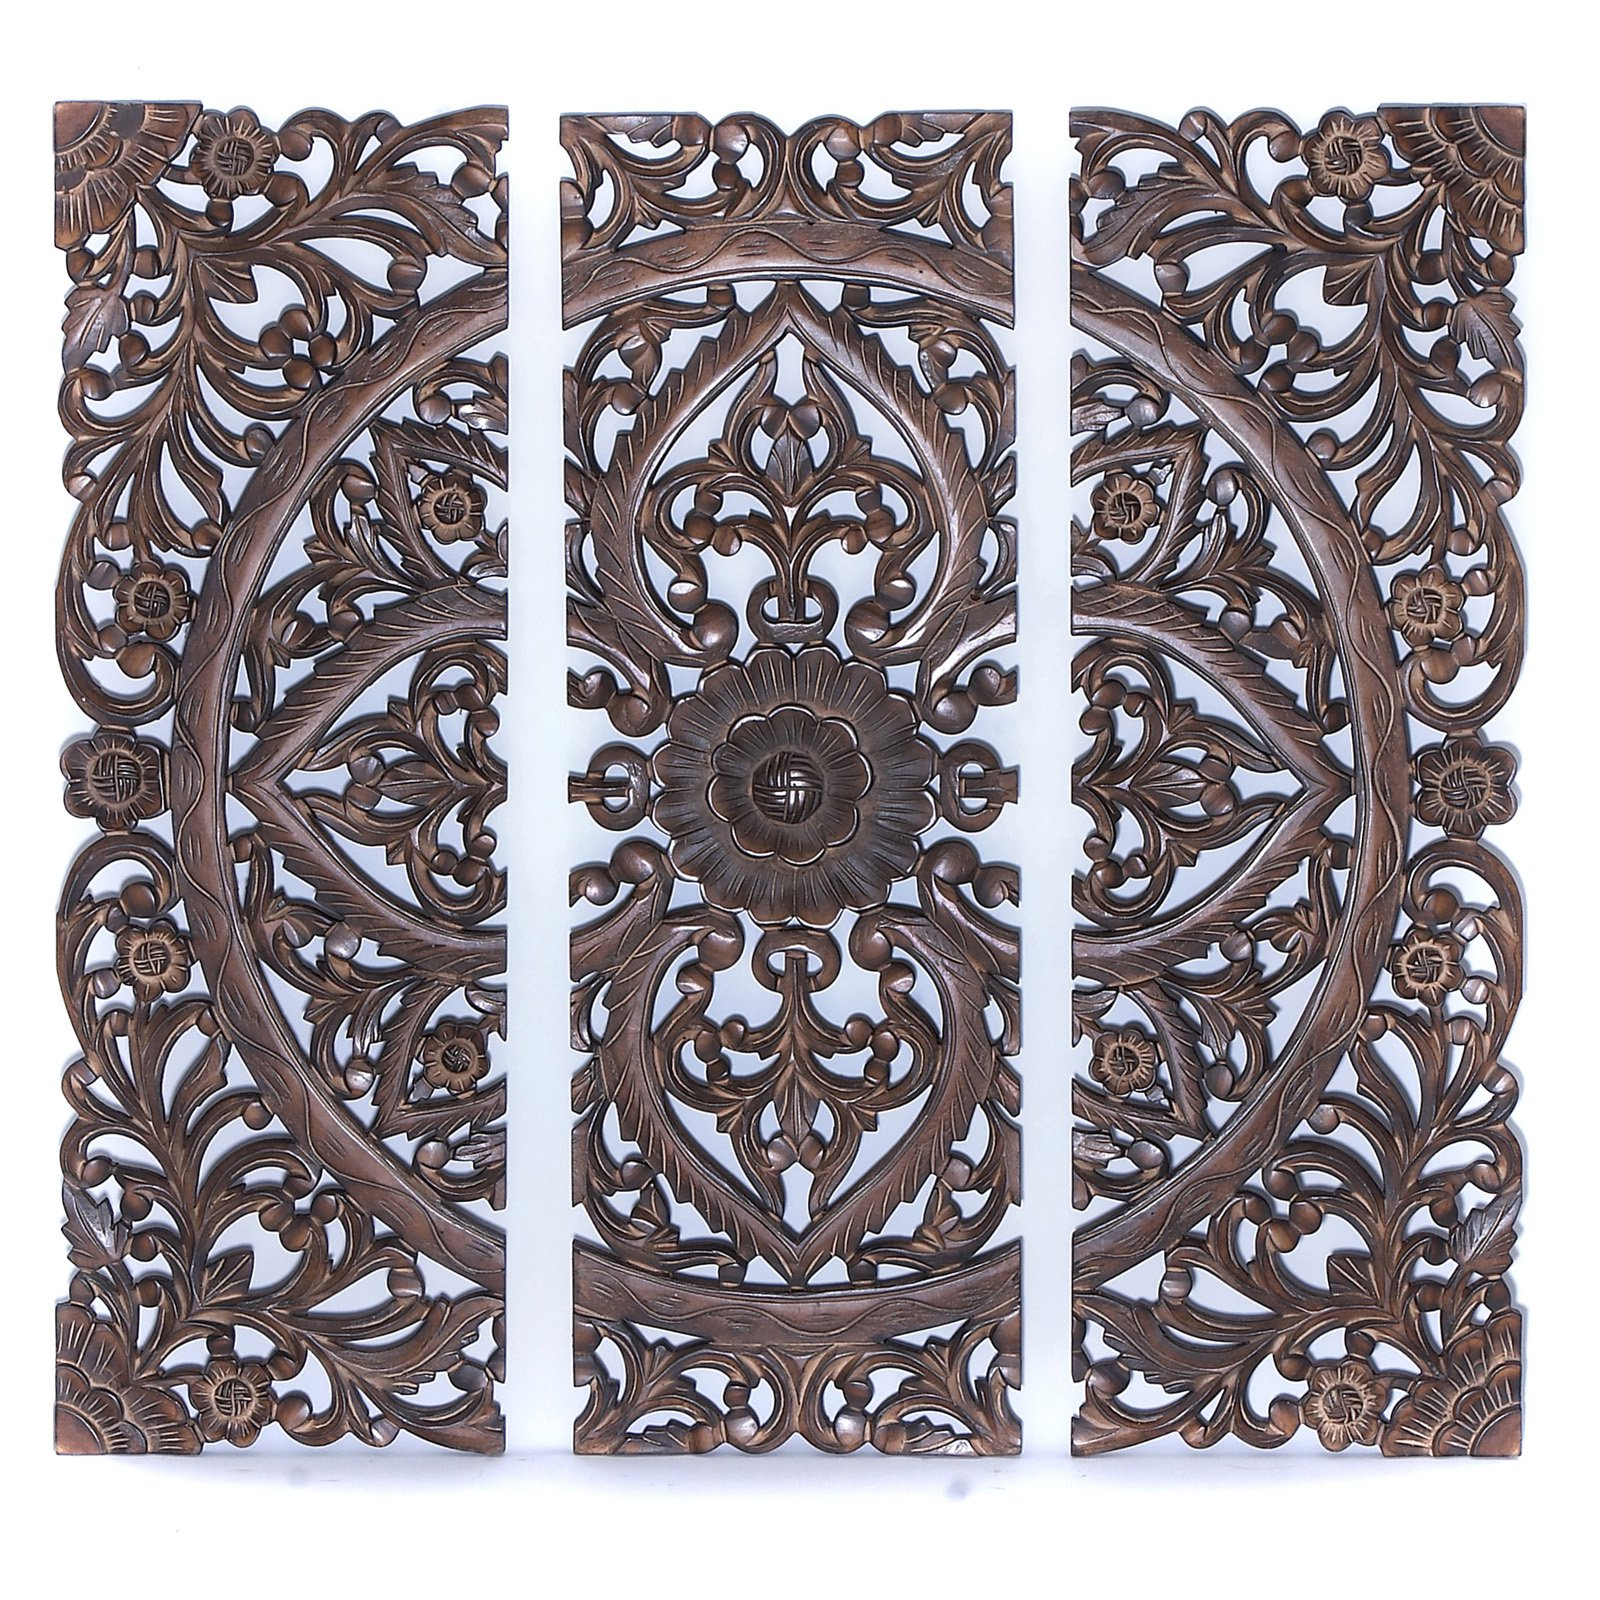 "Benzara 14404 36""h Modern Wood Wall Panel With Dark Finish (Set Of 3 Within Recent Panel Wood Wall Decor Sets (Set Of 2) (View 1 of 20)"